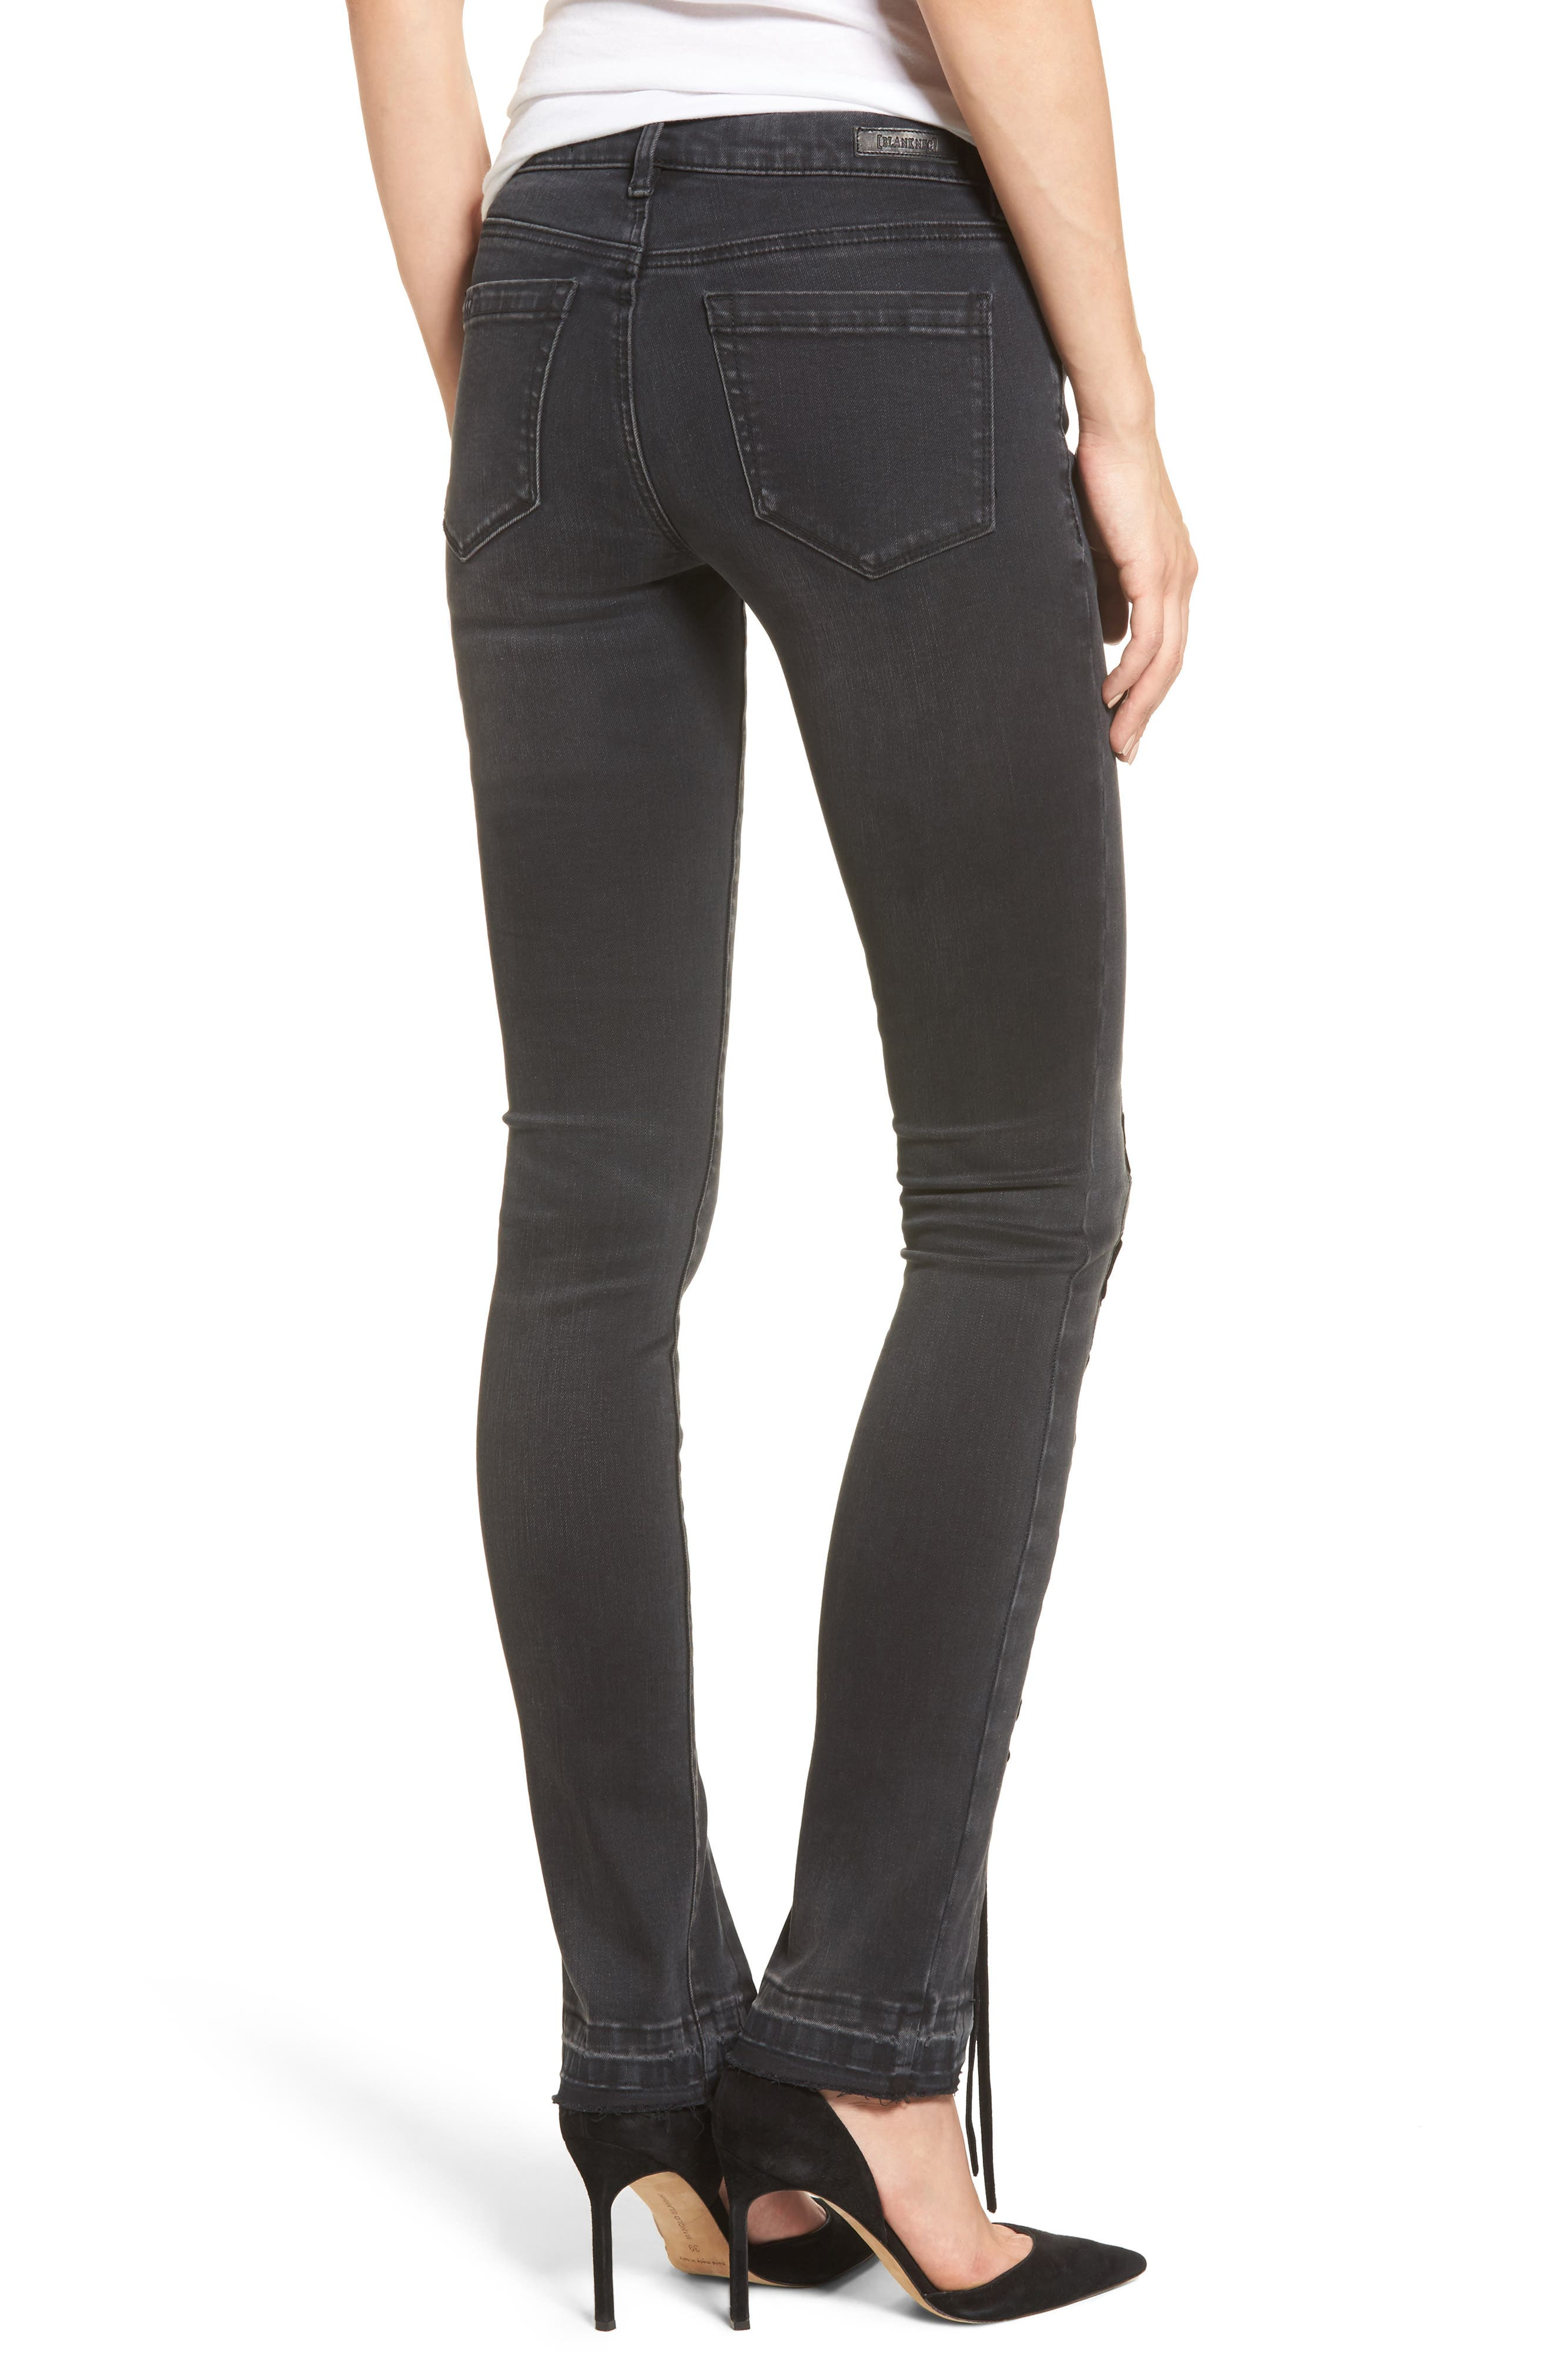 Crash Tactics Lace Up Skinny Jeans,                             Alternate thumbnail 2, color,